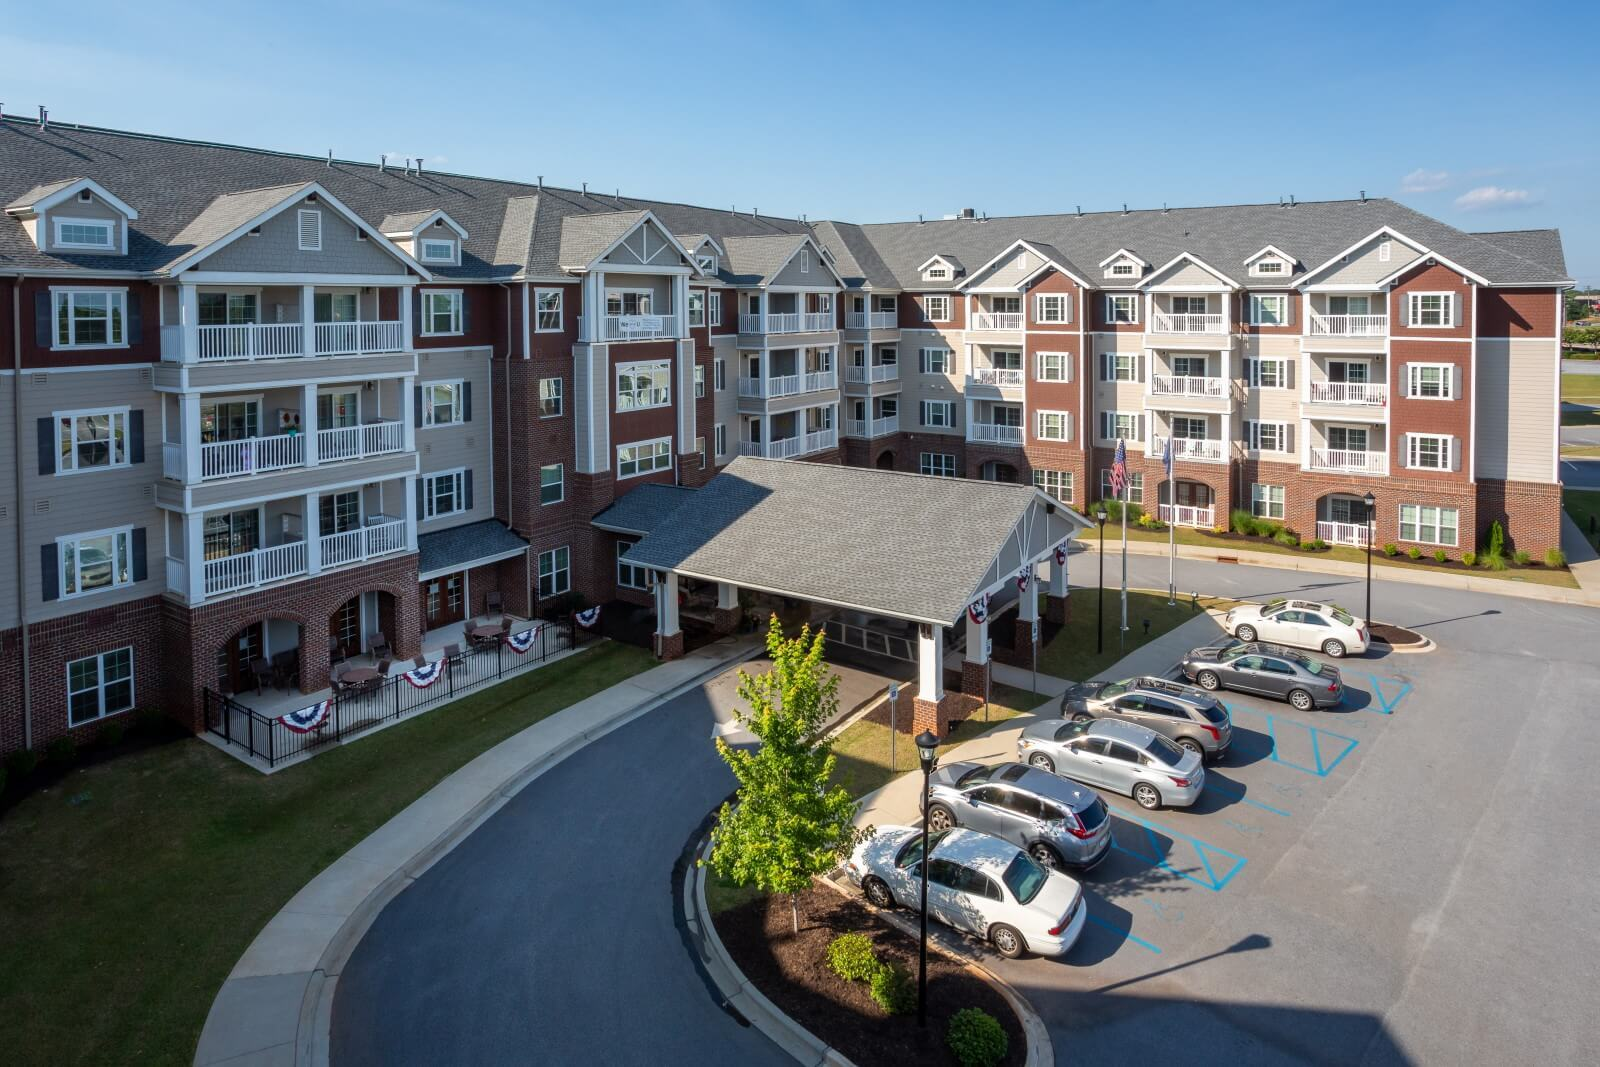 Harmony-at-Five-Forks-Exterior-9